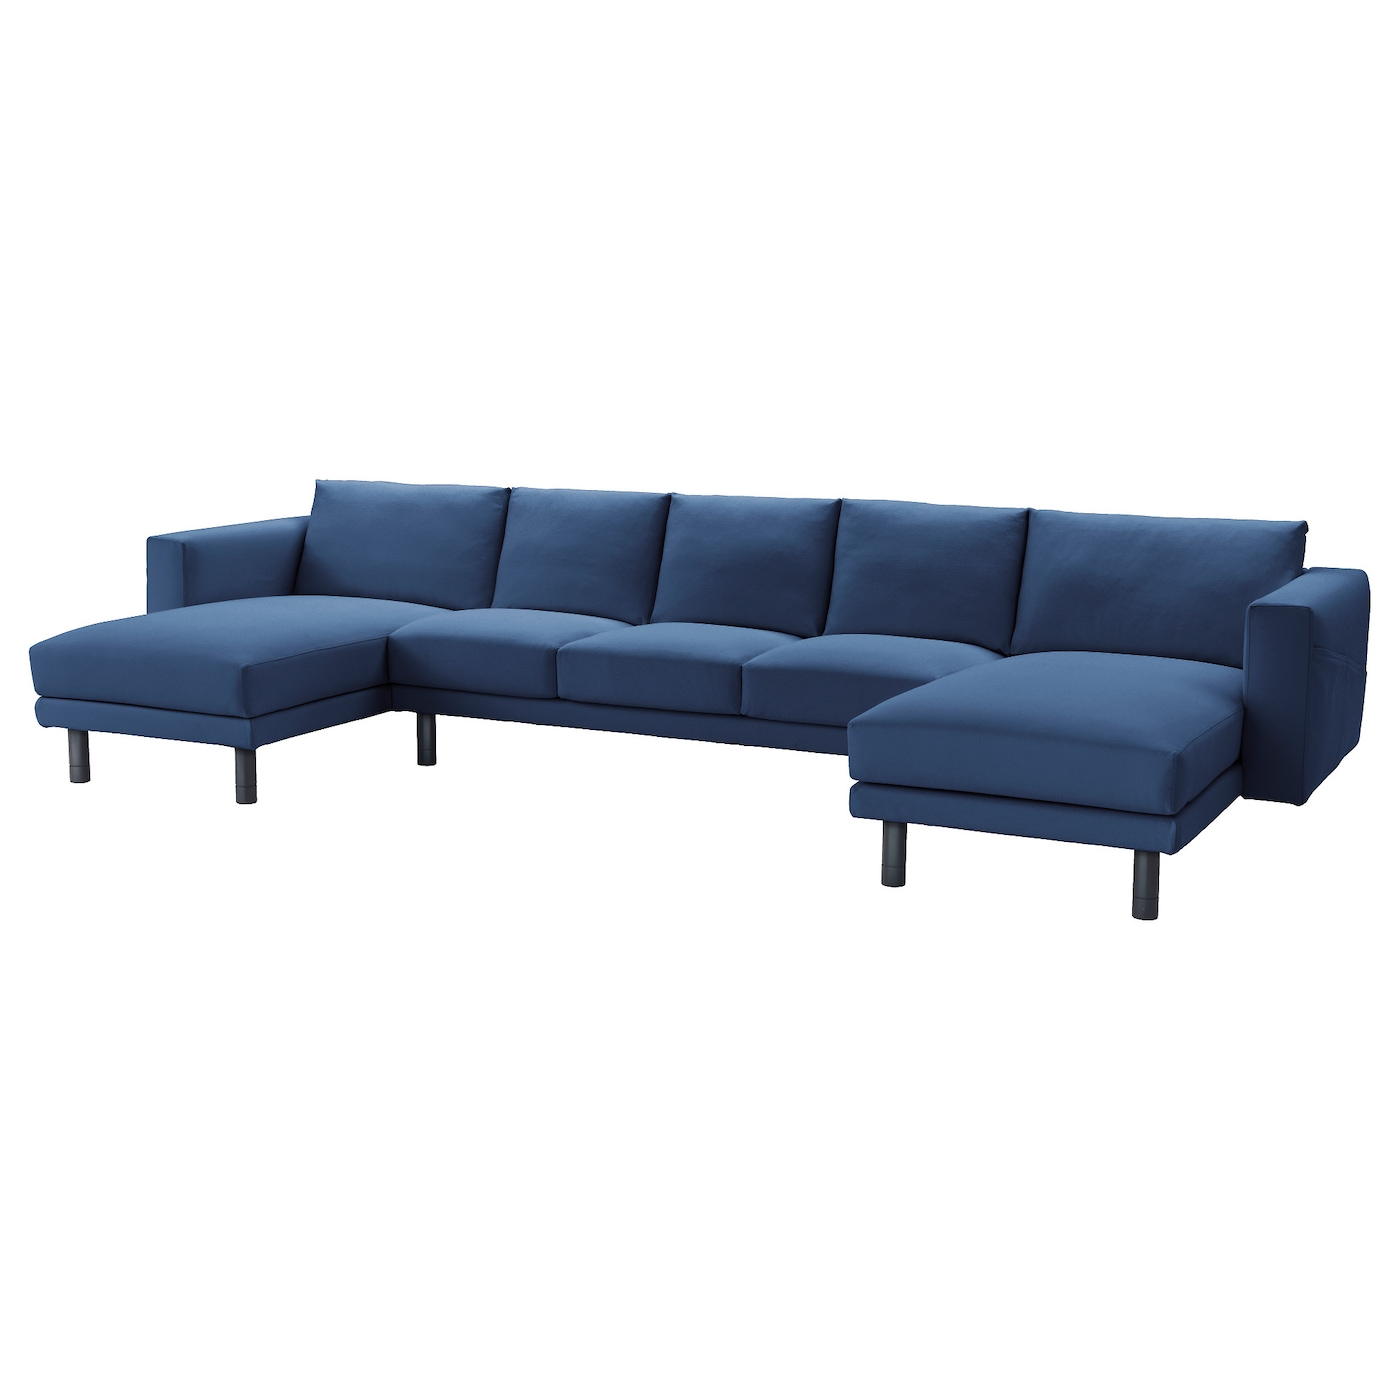 Norsborg 3 seat sofa with 2 chaise longues gr sbo dark for U sofa med chaiselong